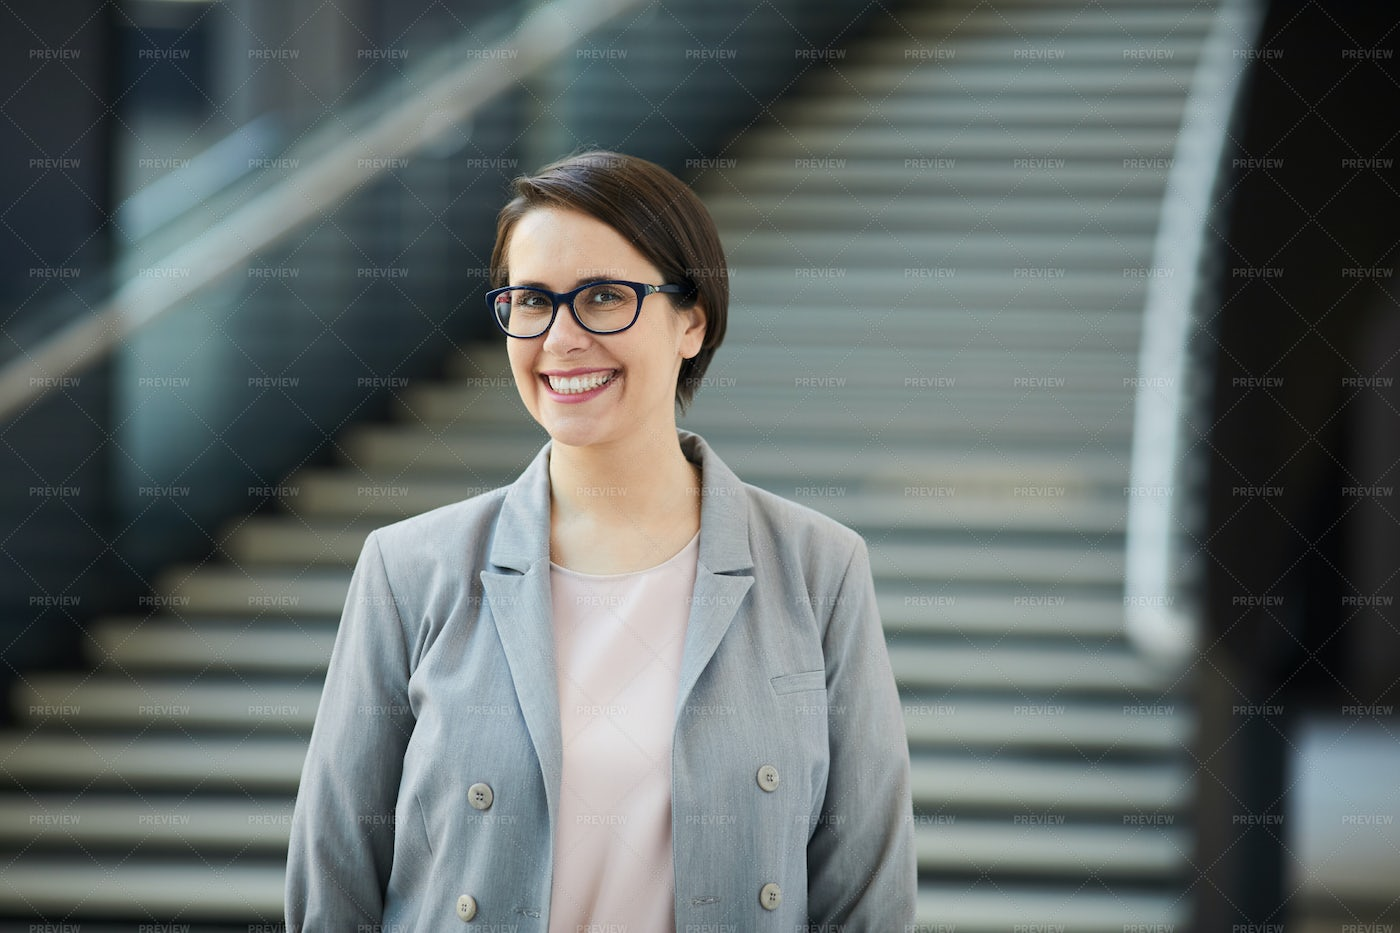 Cheerful Project Manager In Lobby: Stock Photos